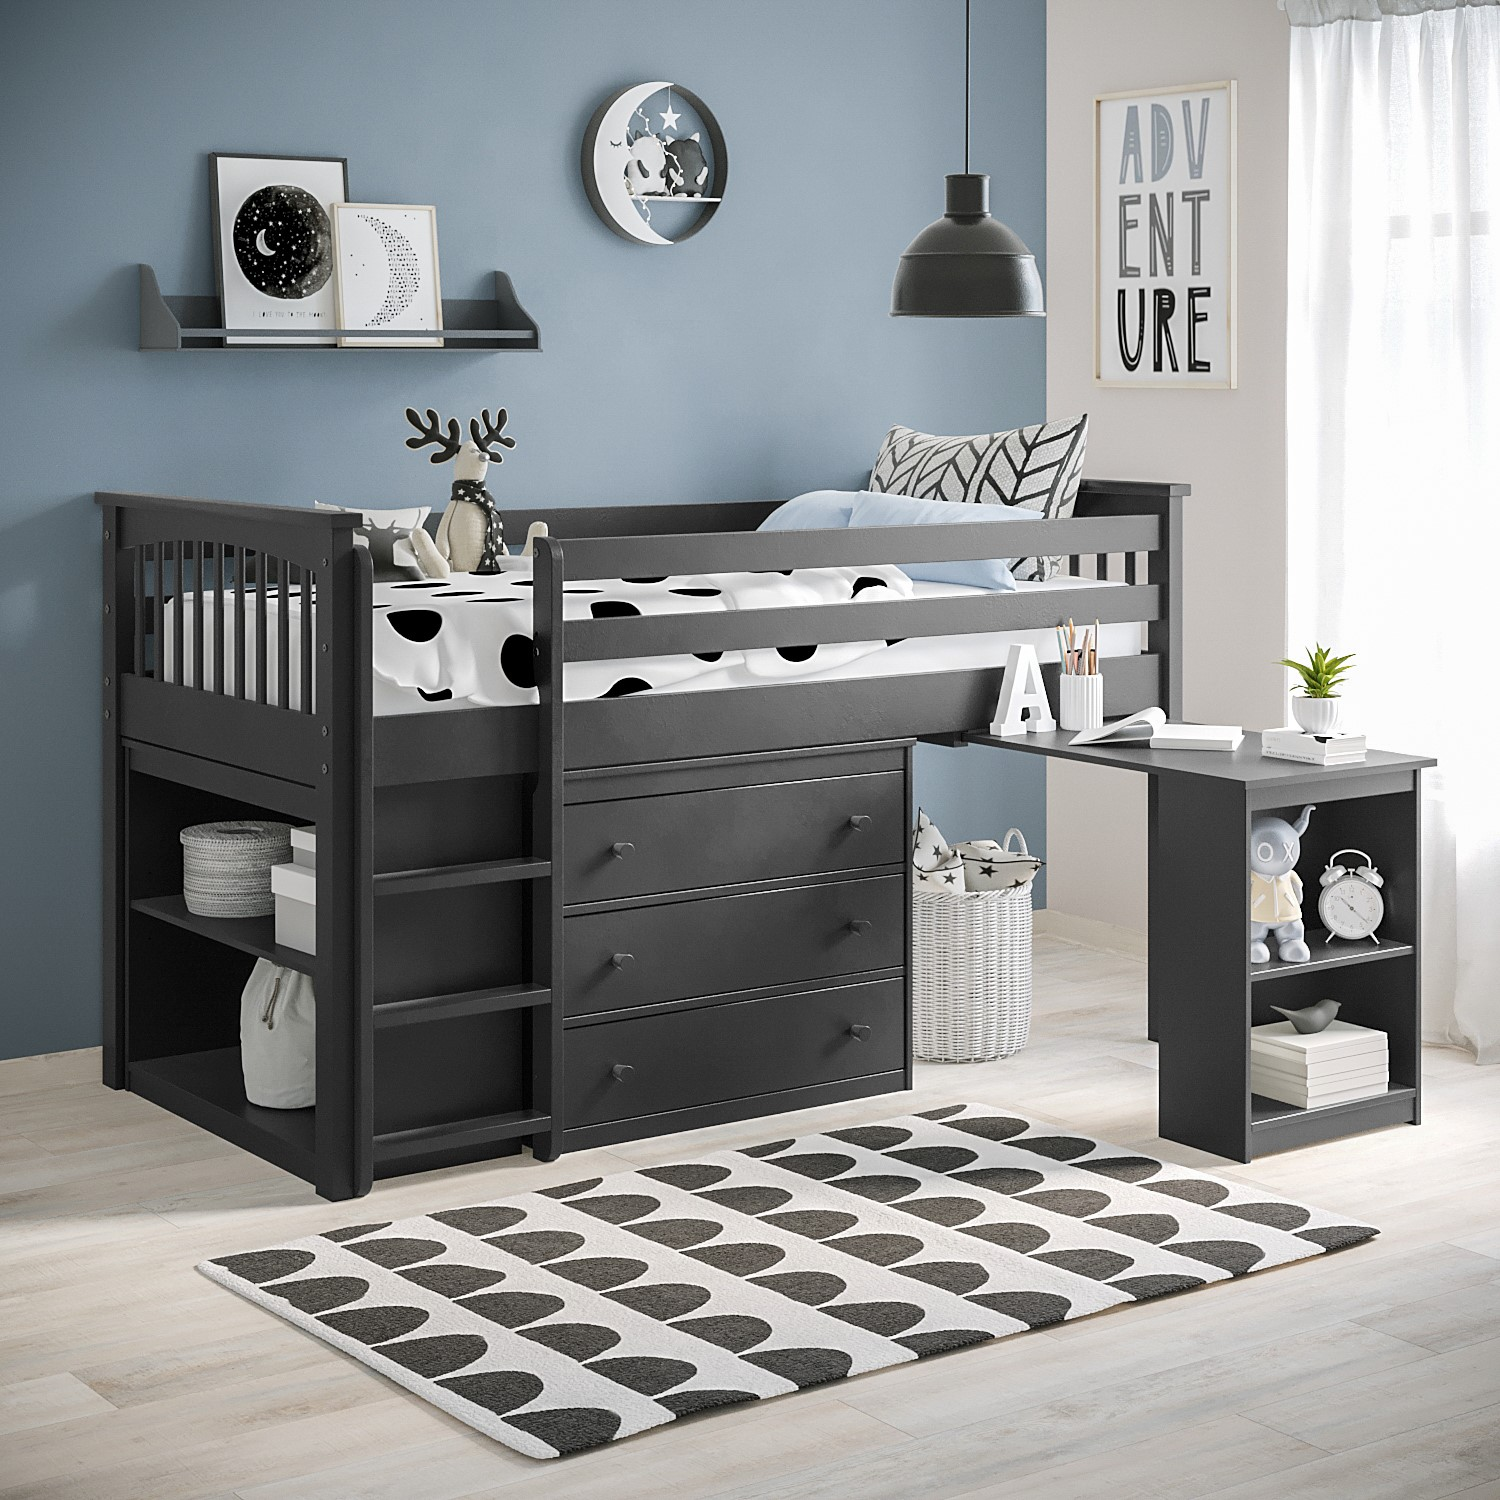 Picture of: Grade A2 Windermere Midsleeper In Dark Grey With Pull Out Desk Furniture123